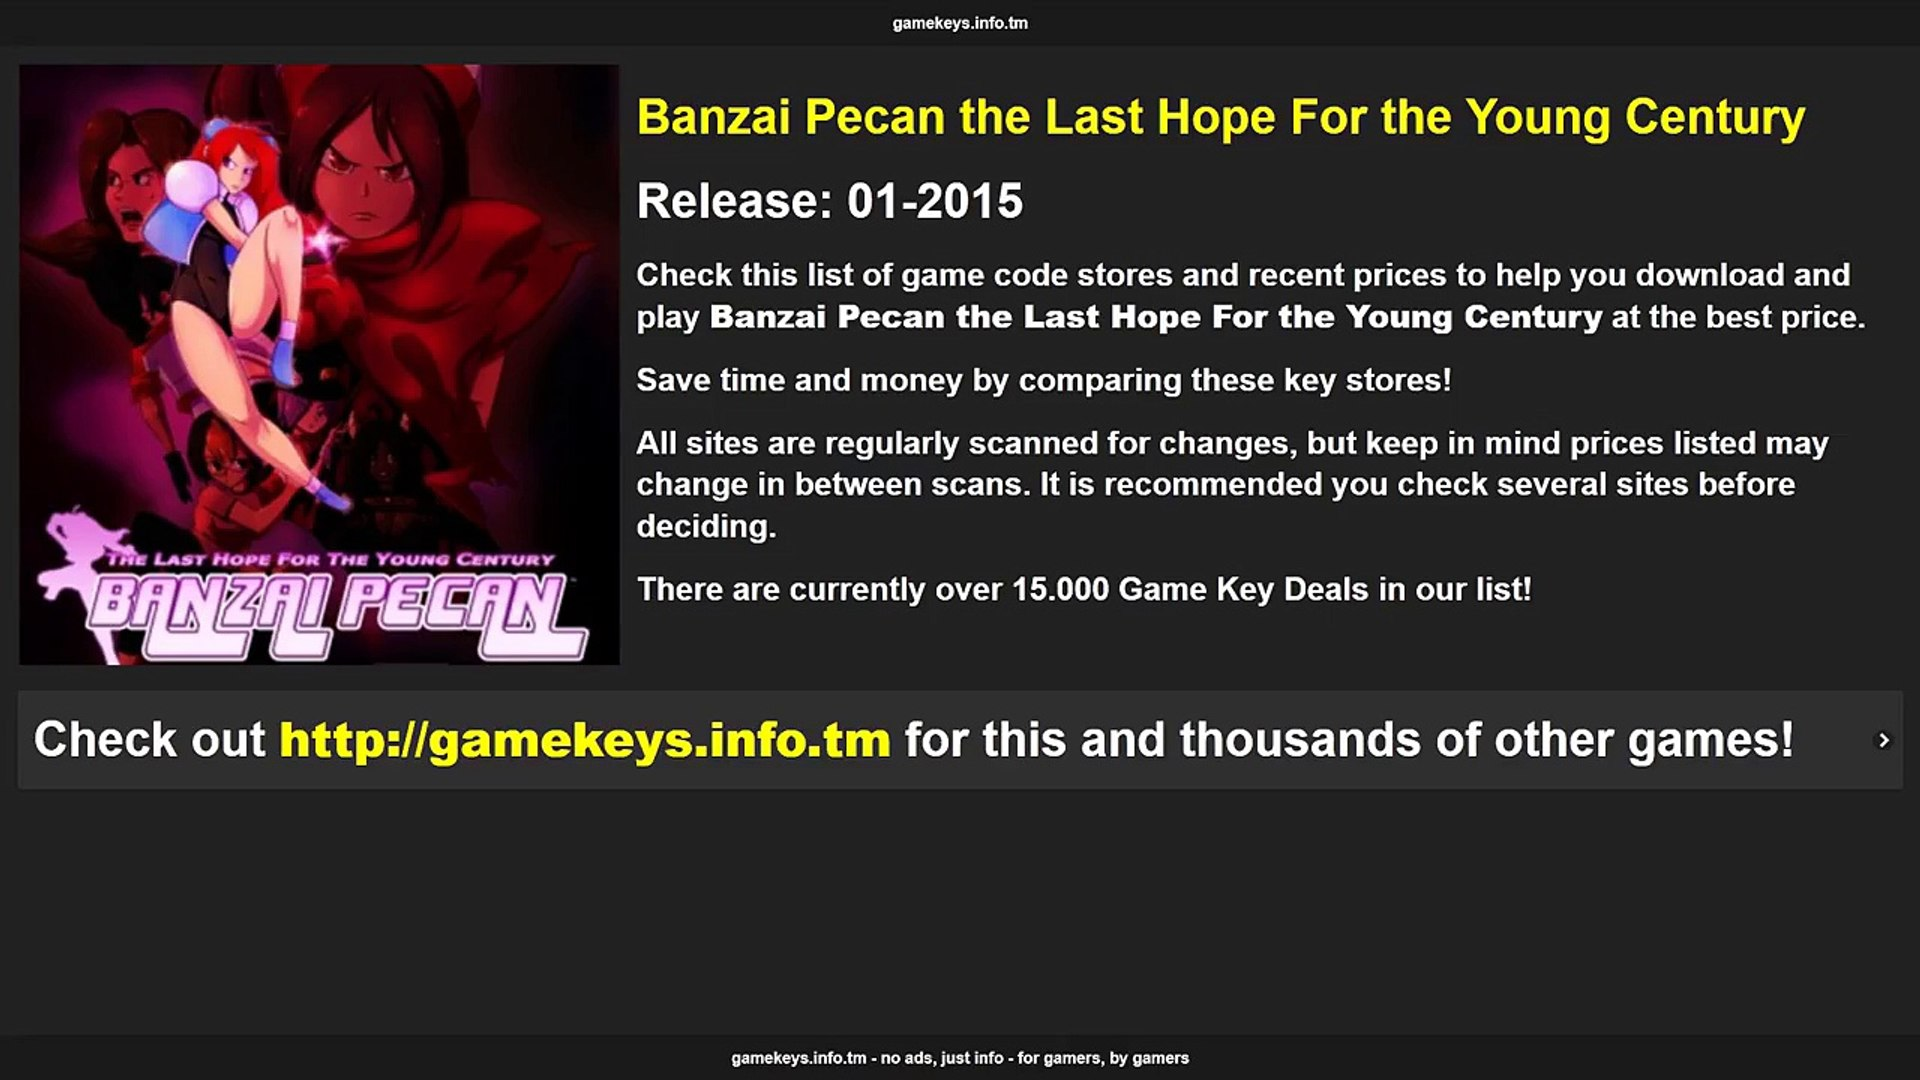 Banzai Pecan the Last Hope For the Young Century Game Key